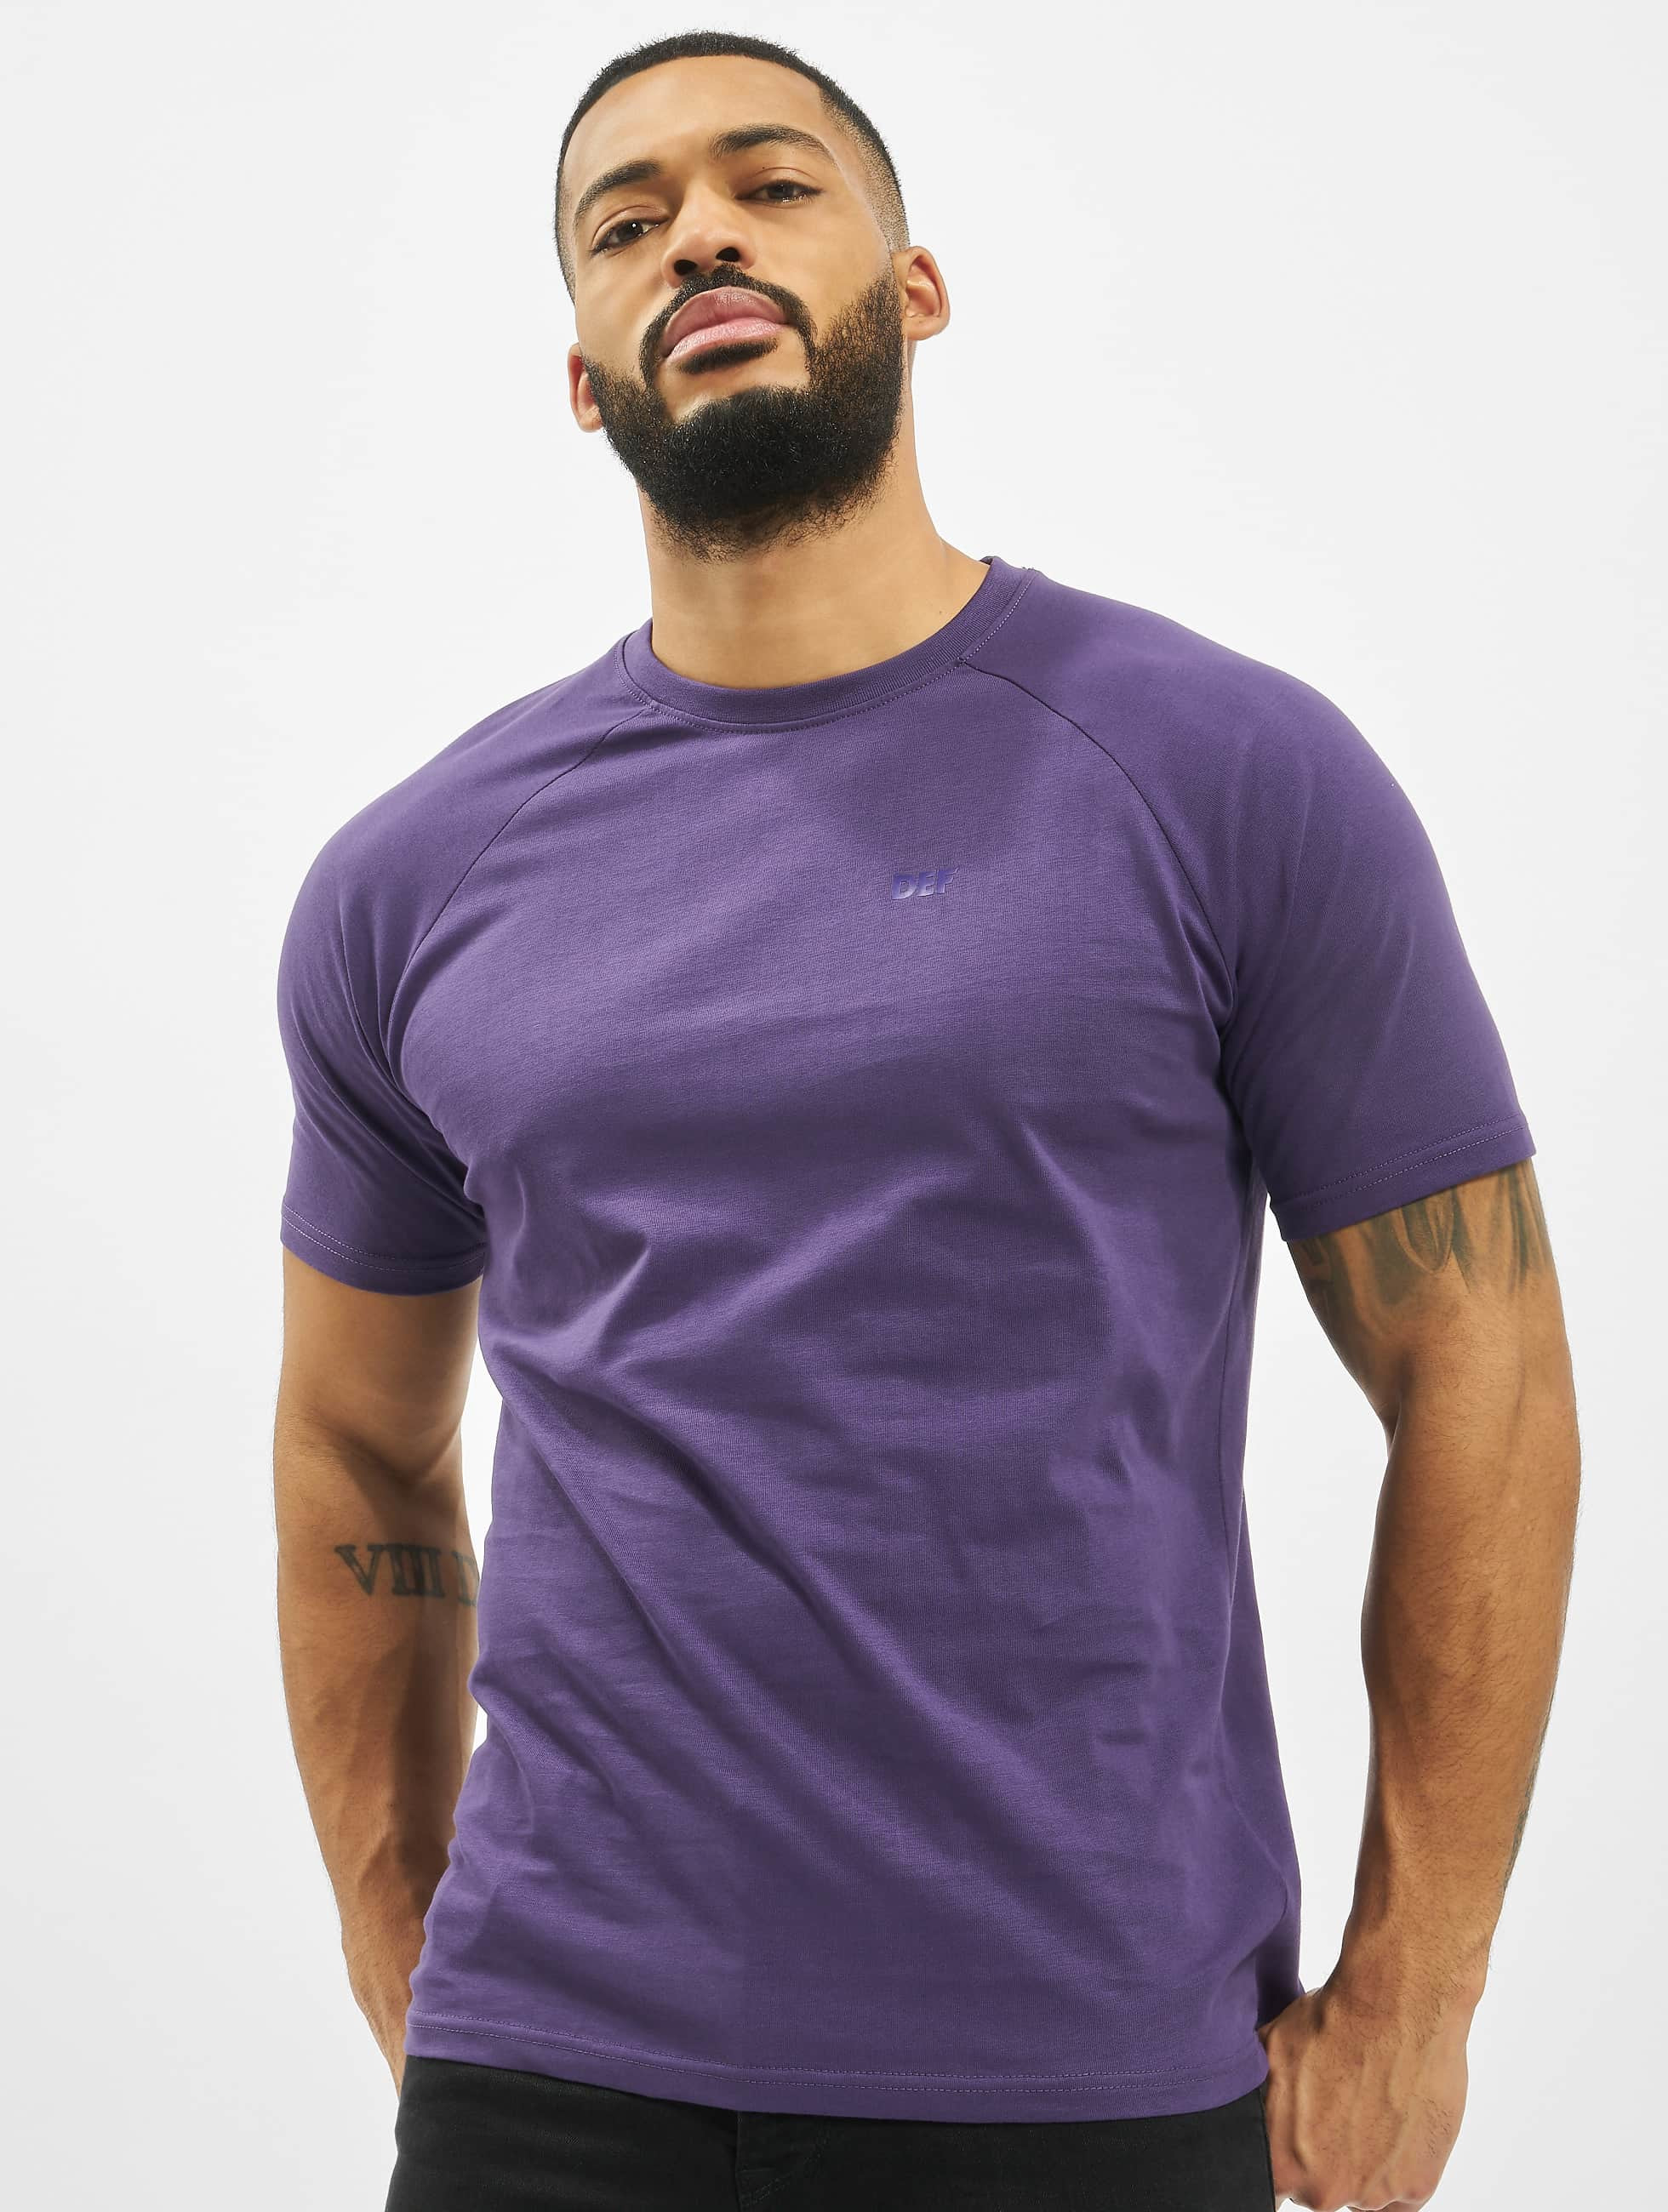 DEF / T-Shirt Kai in purple XL